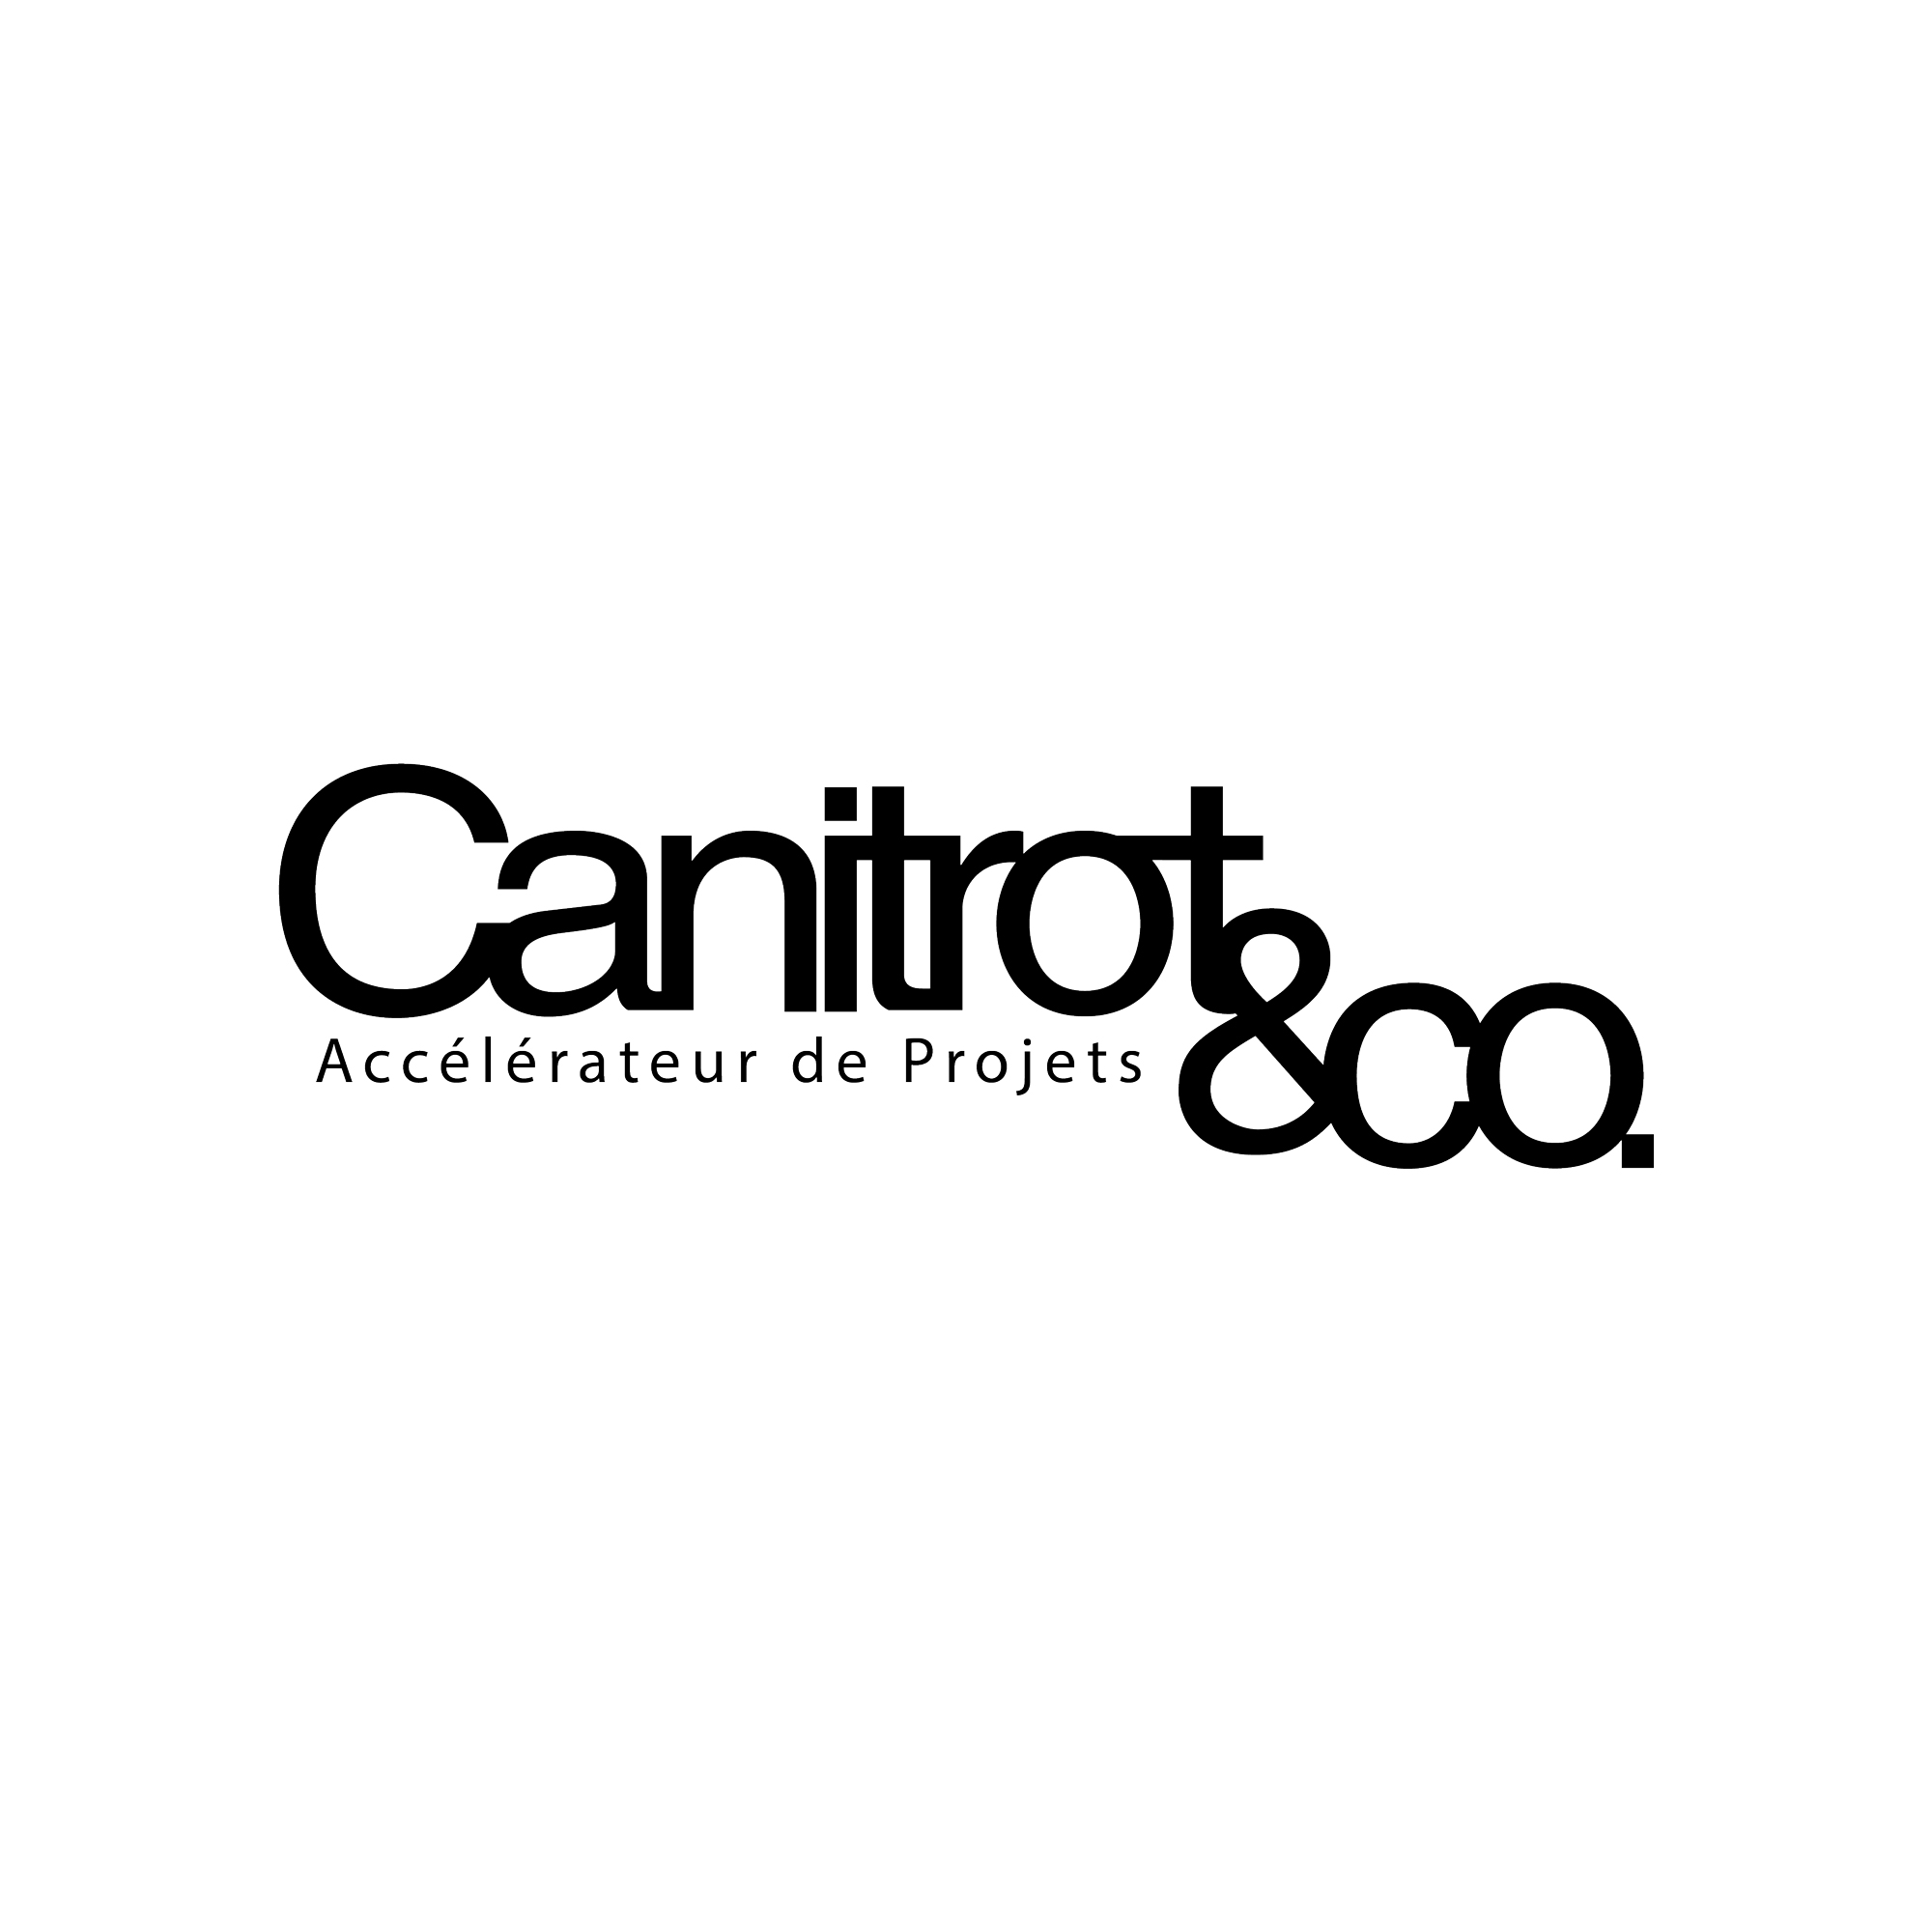 Canitrot & Co